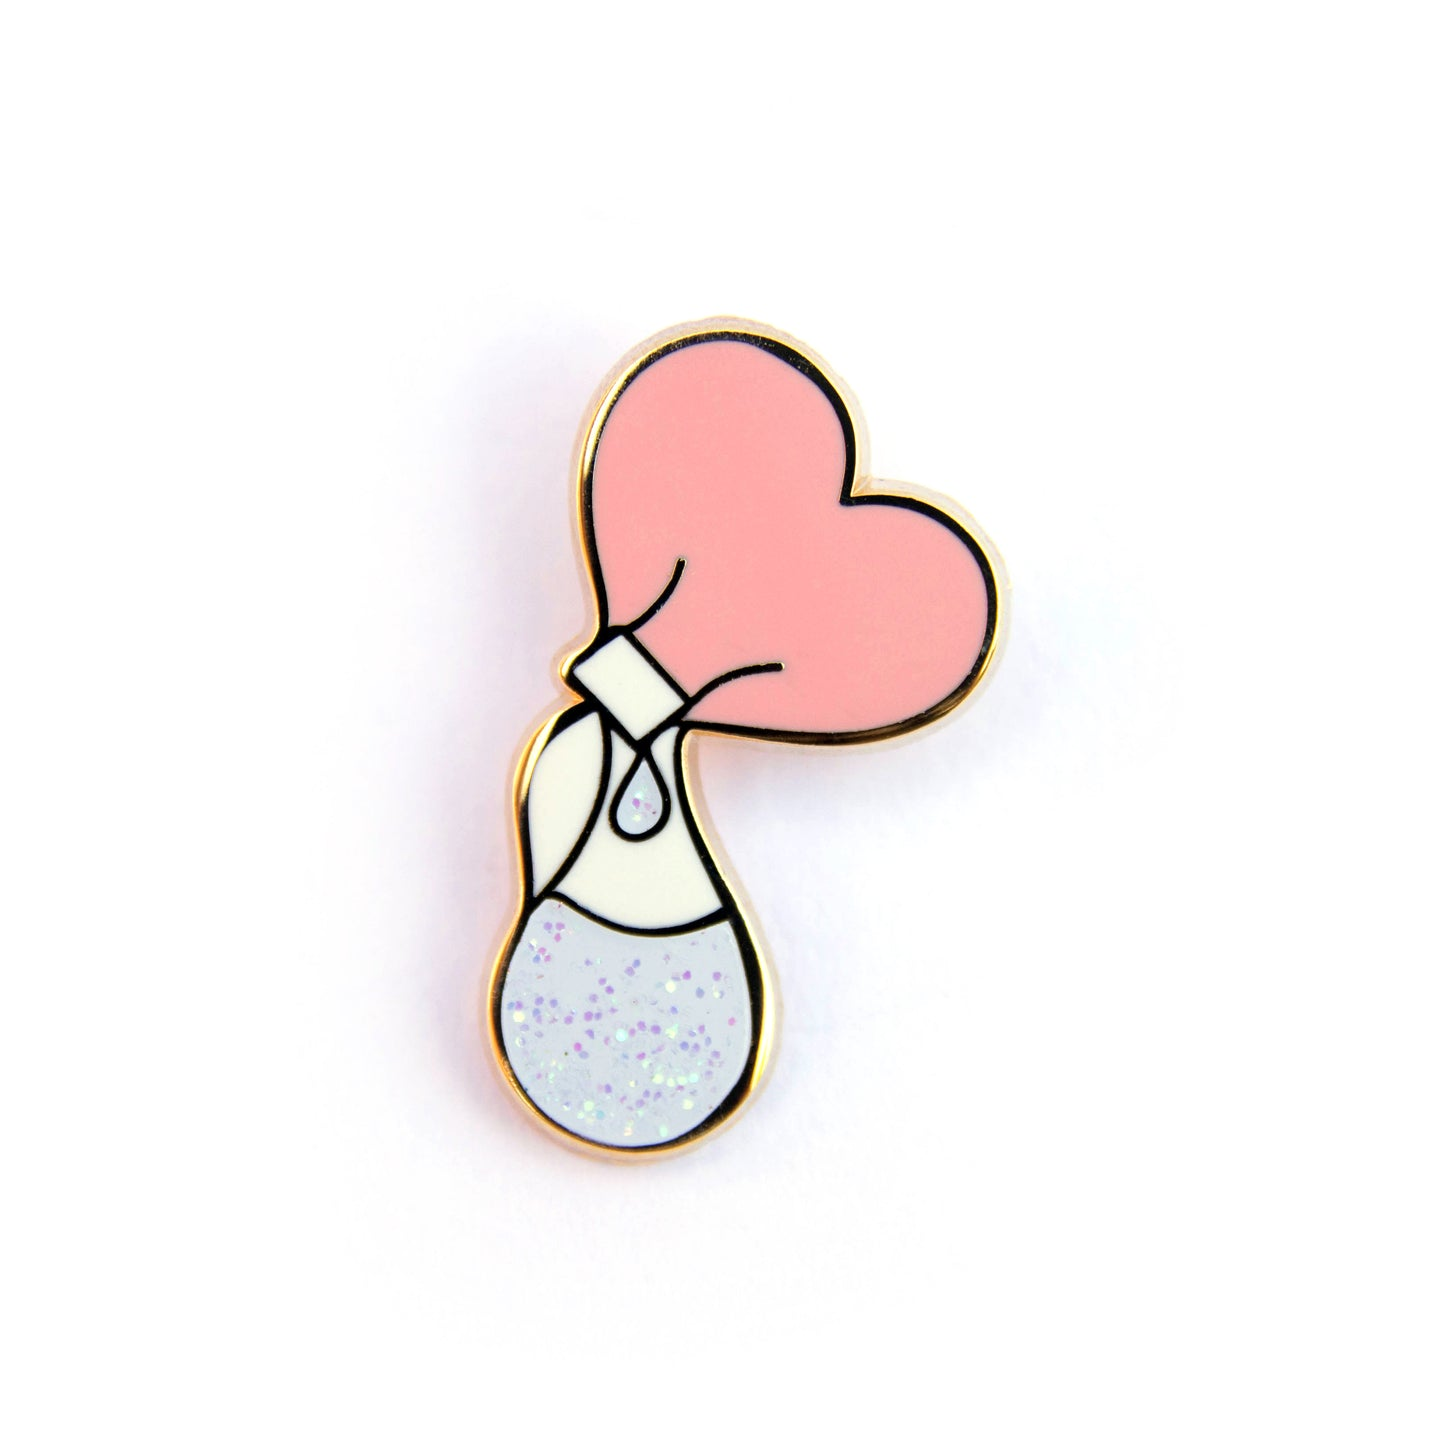 Pumping Liquid Love Enamel Pin